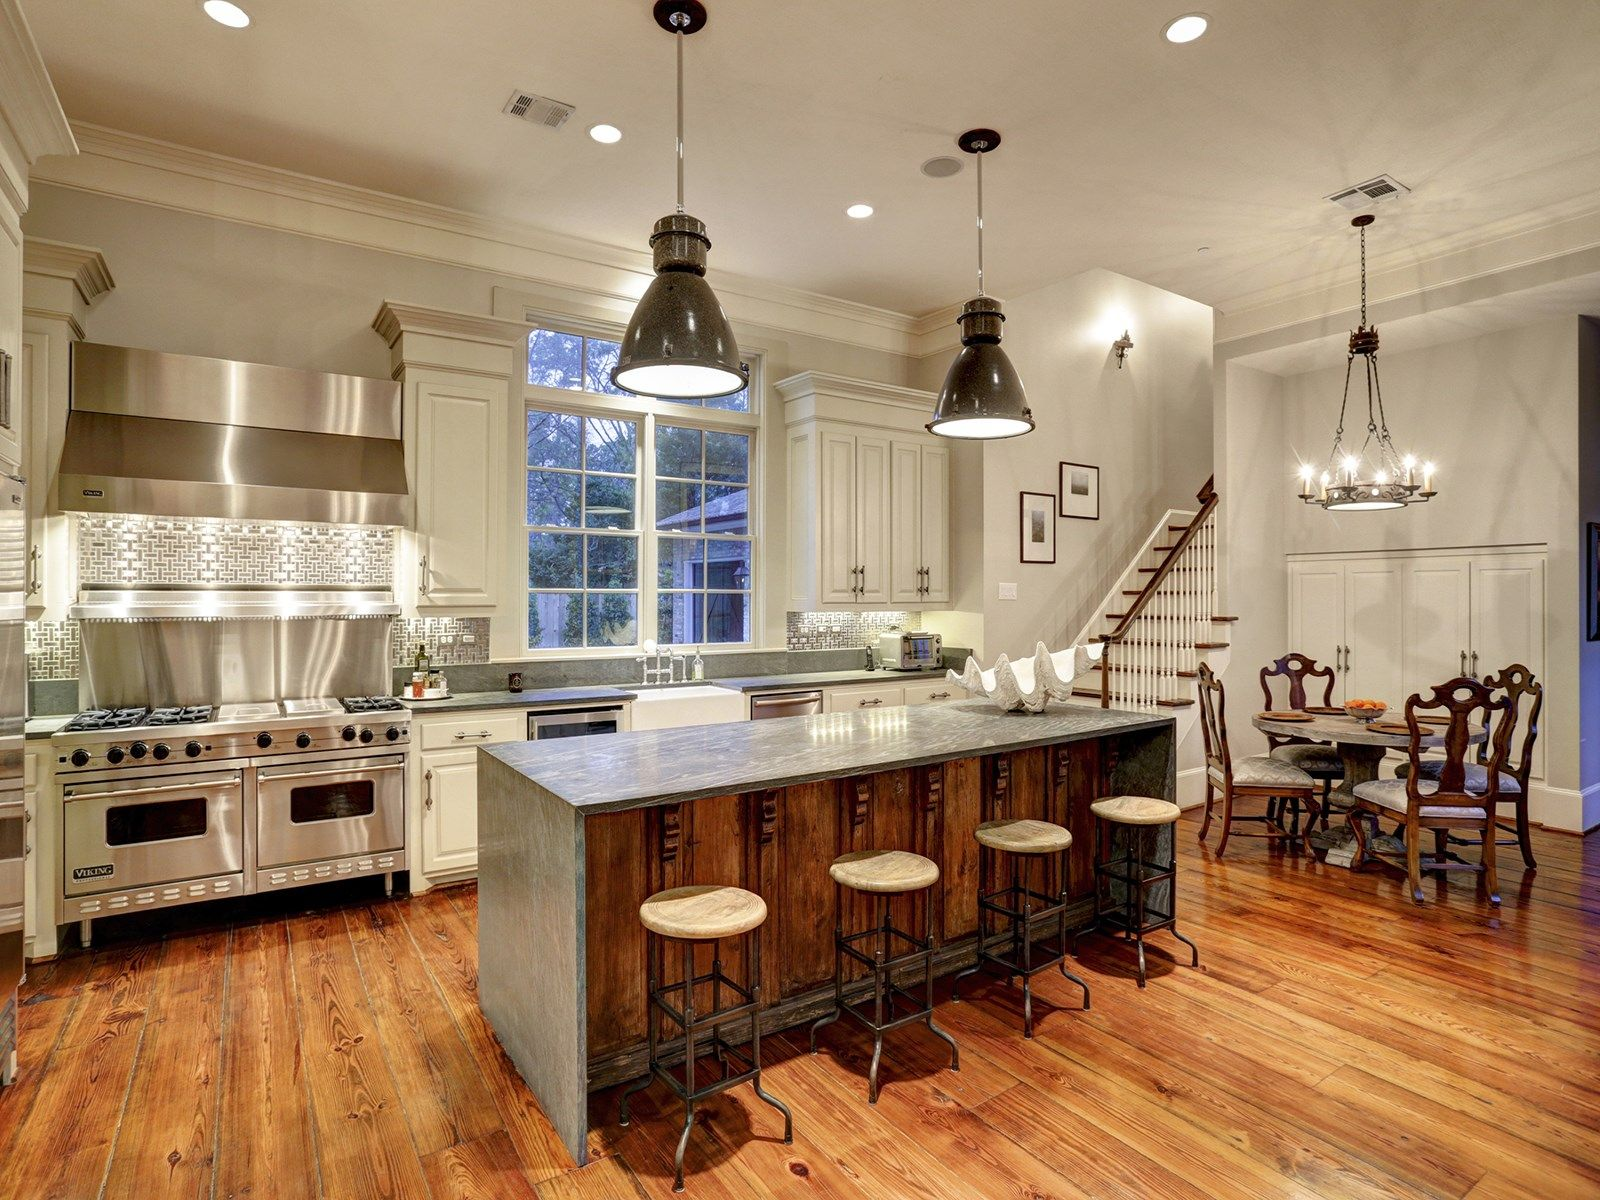 Amazing CHEF S KITCHEN with a professional Viking Range and vent